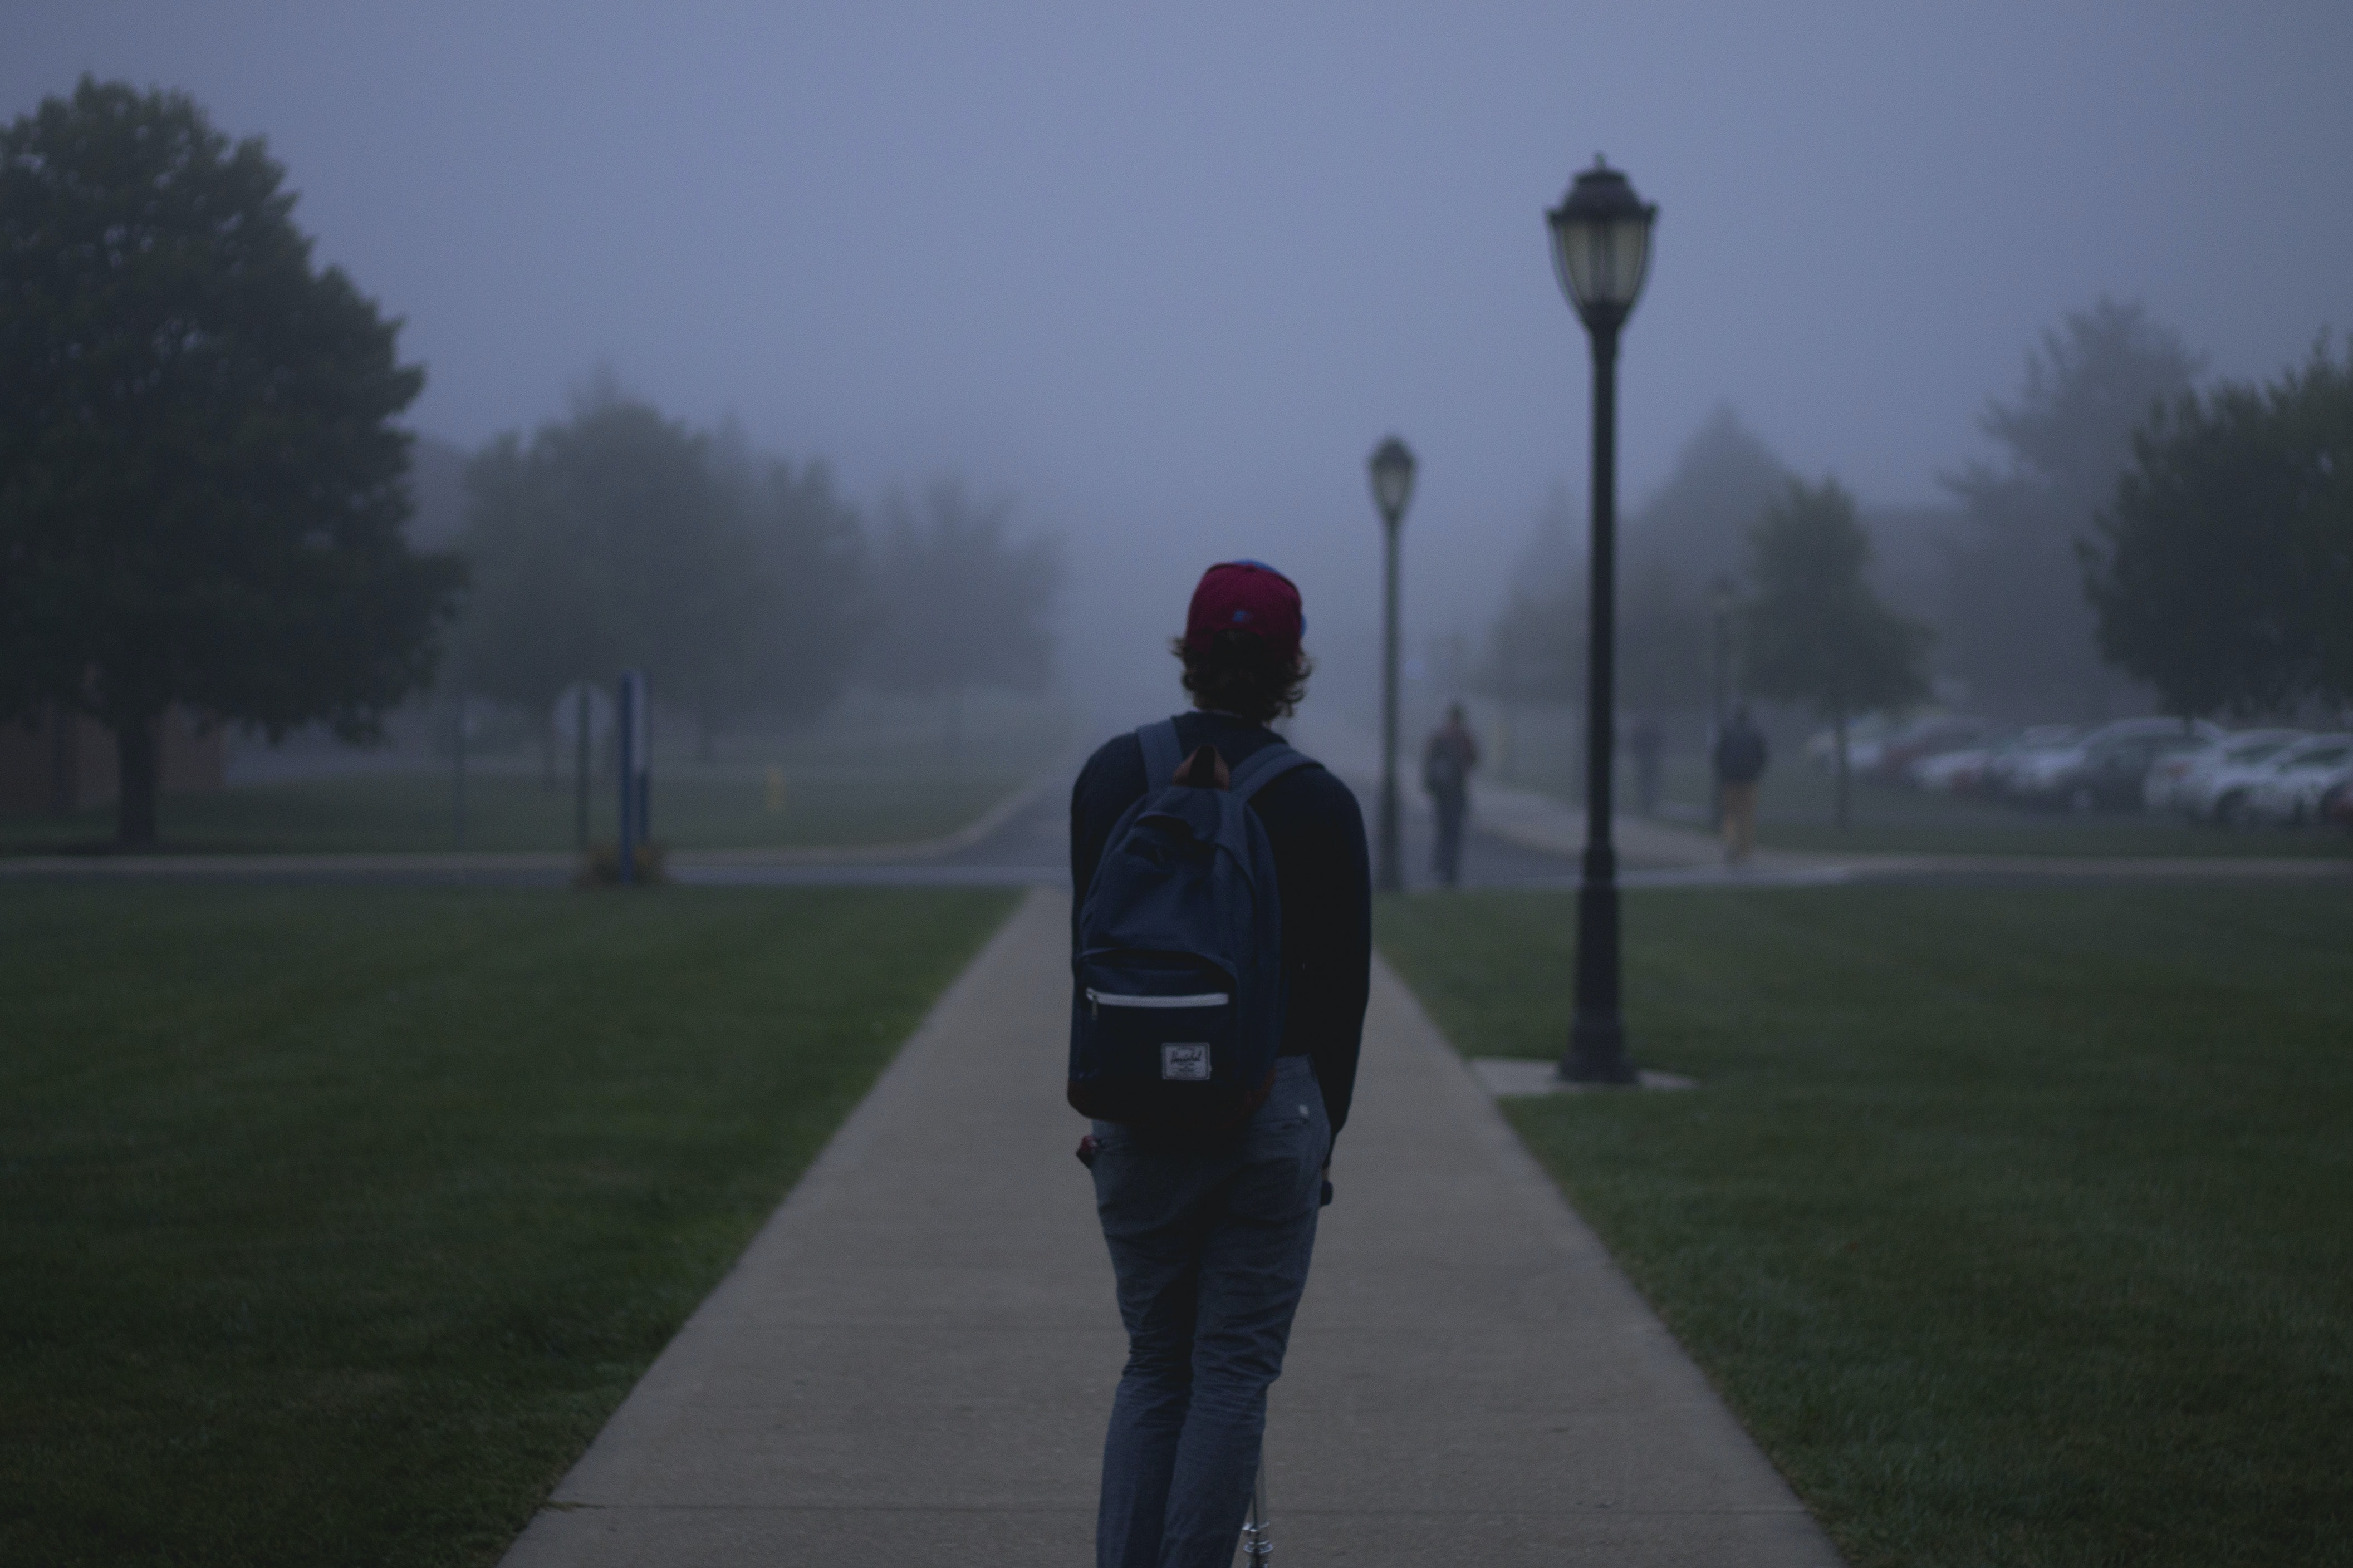 College student alone on a razor scooter on a foggy day